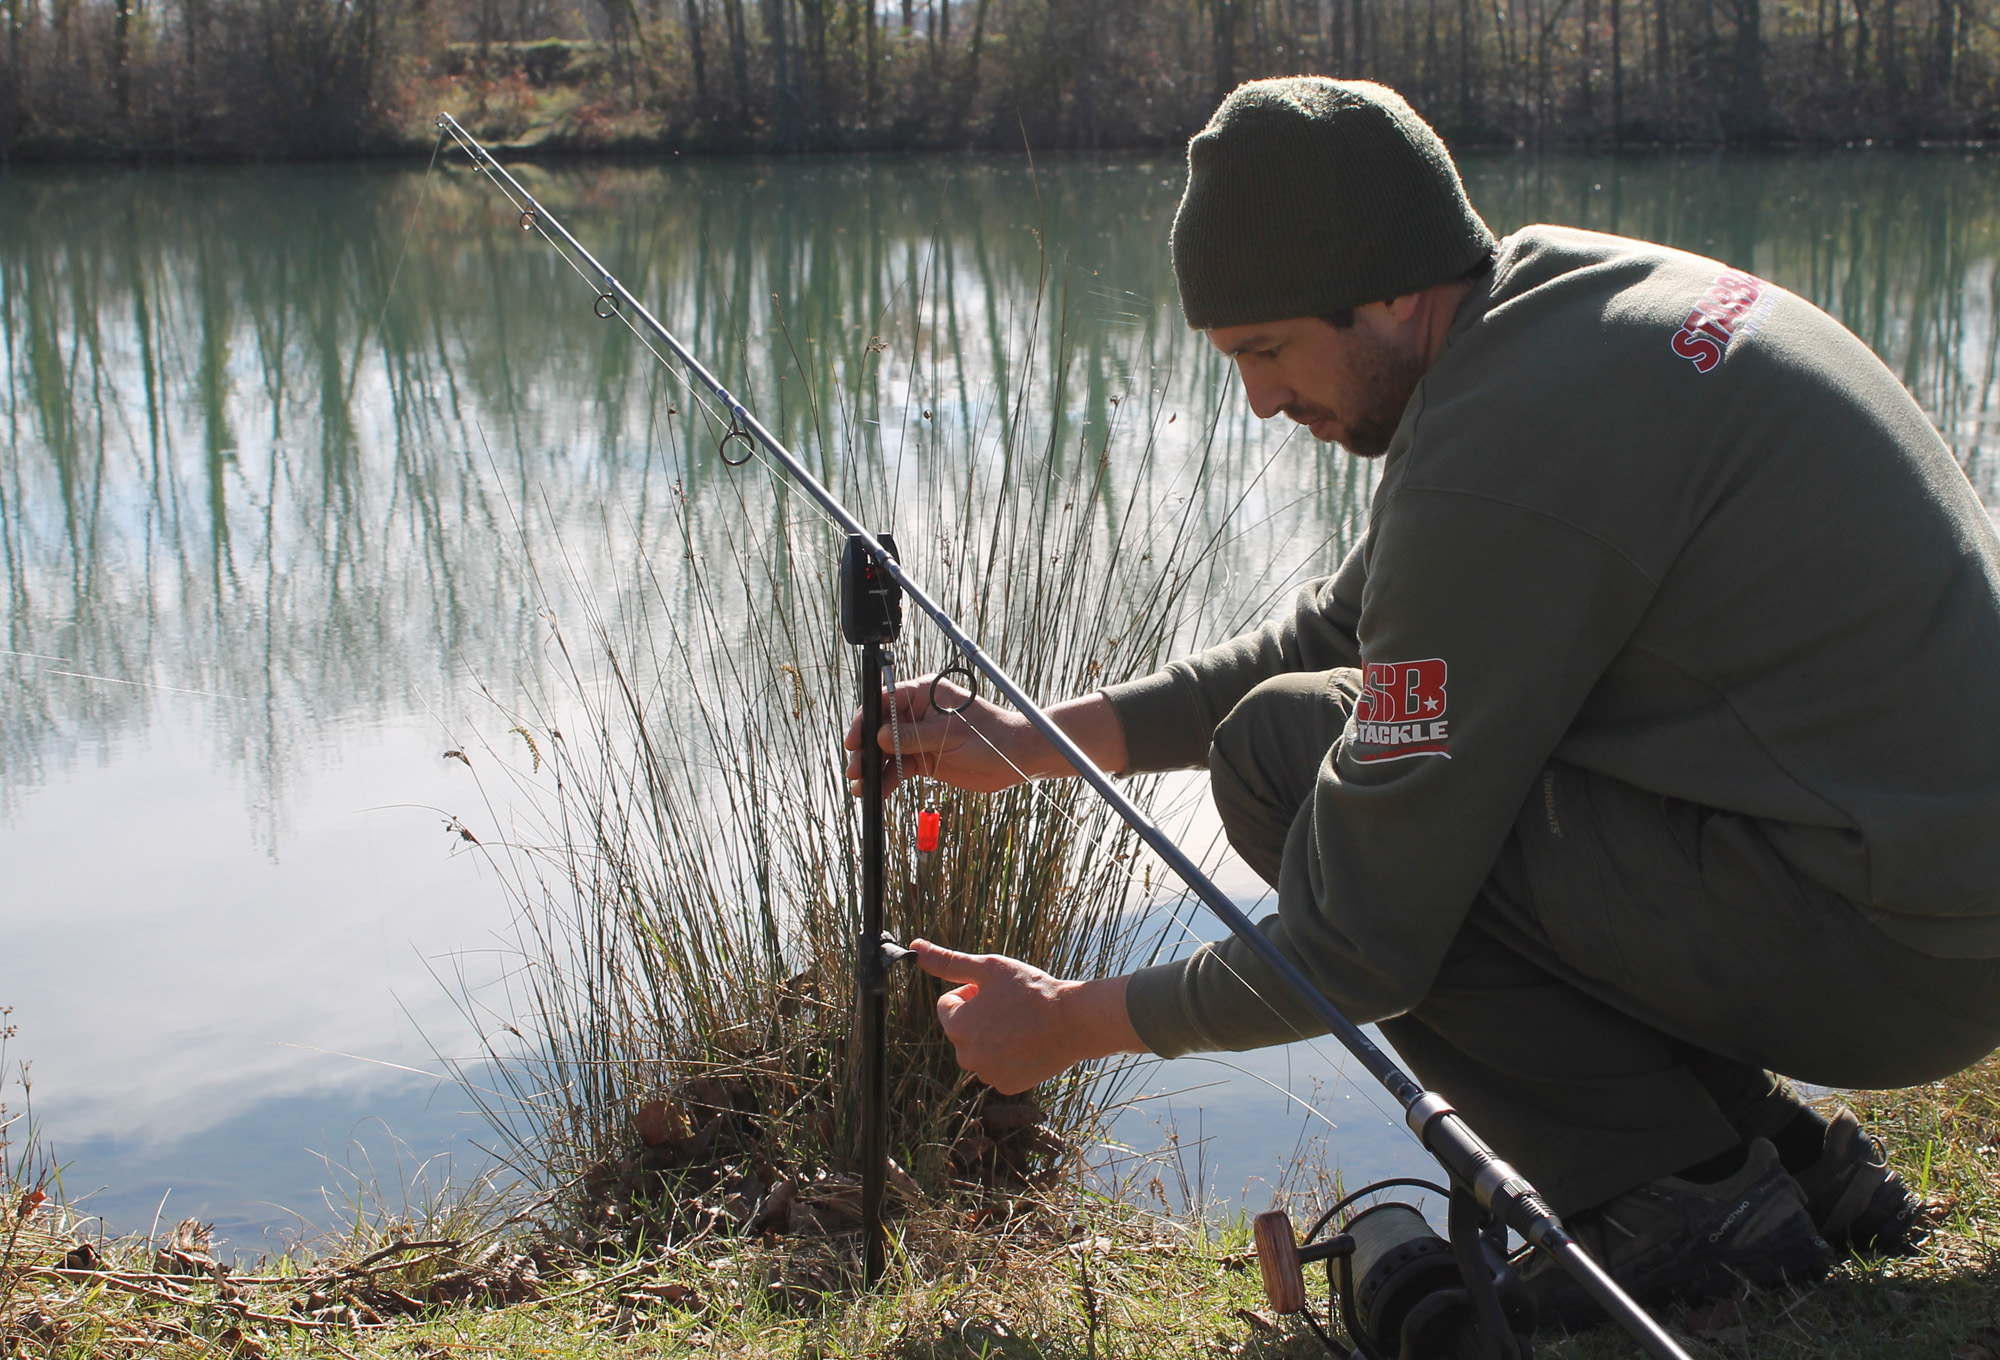 http://starbaits.com/fichiers/images/team/gallery/DUCERE_Cedric/24-DUCERE-CEDRIC.jpg